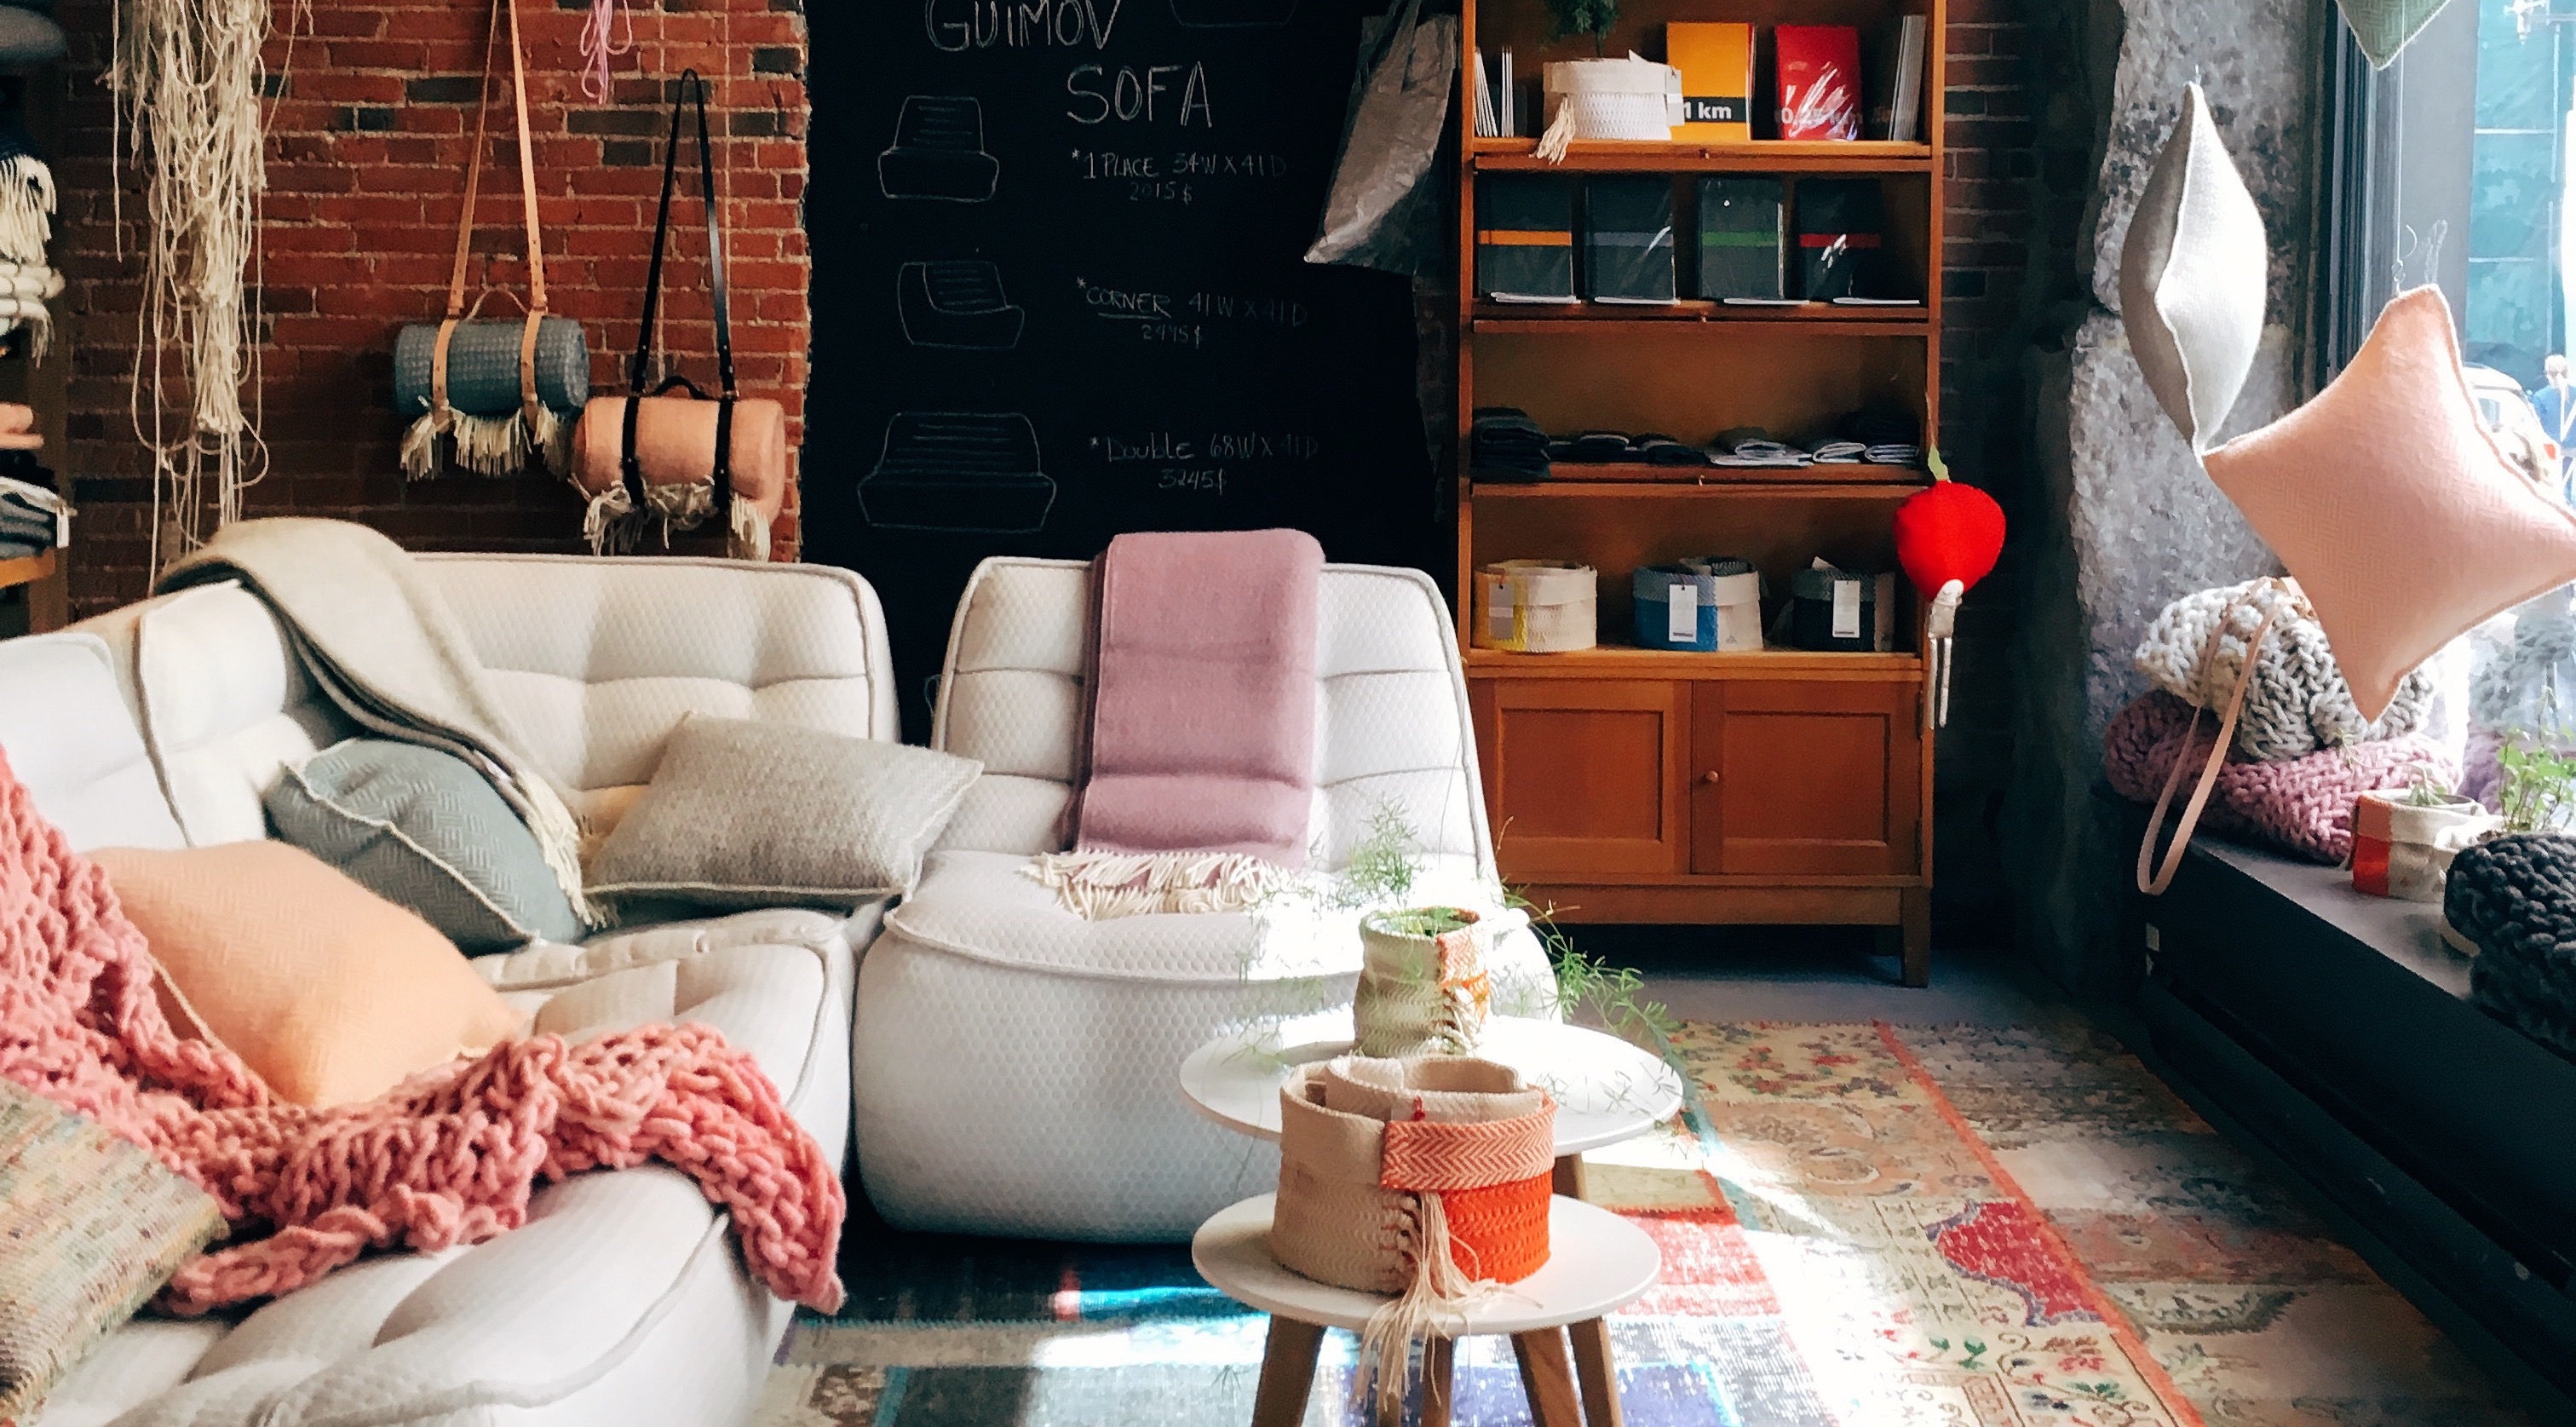 Living With Roommates: 5 Expert Tips For Decorating On A Budget